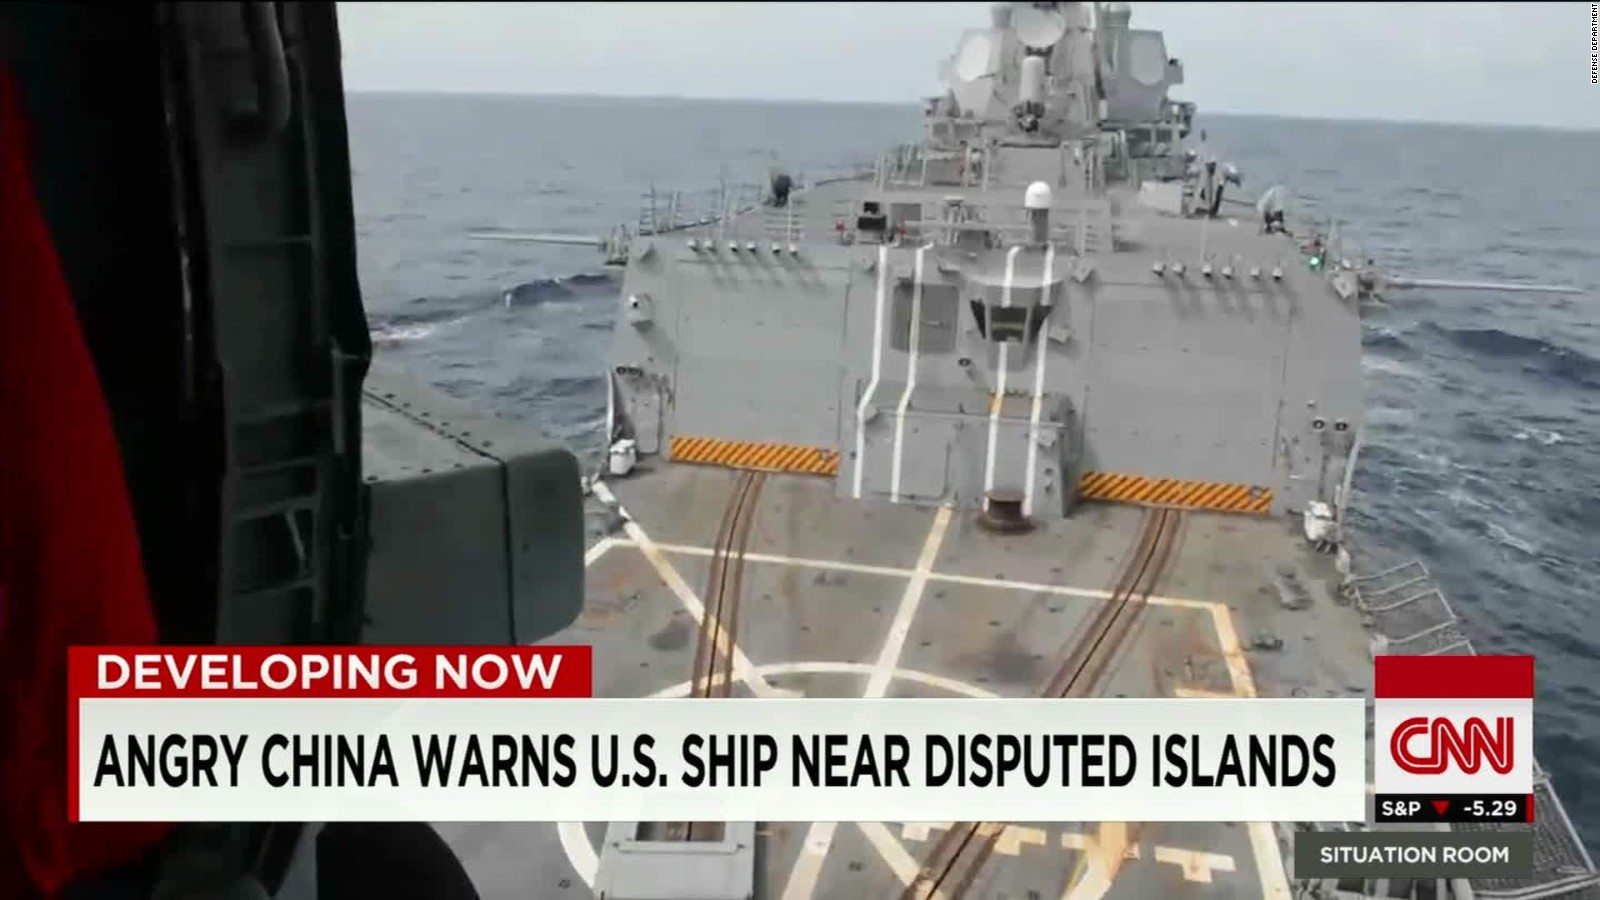 China says it warned and tracked U.S. warship in South China Sea